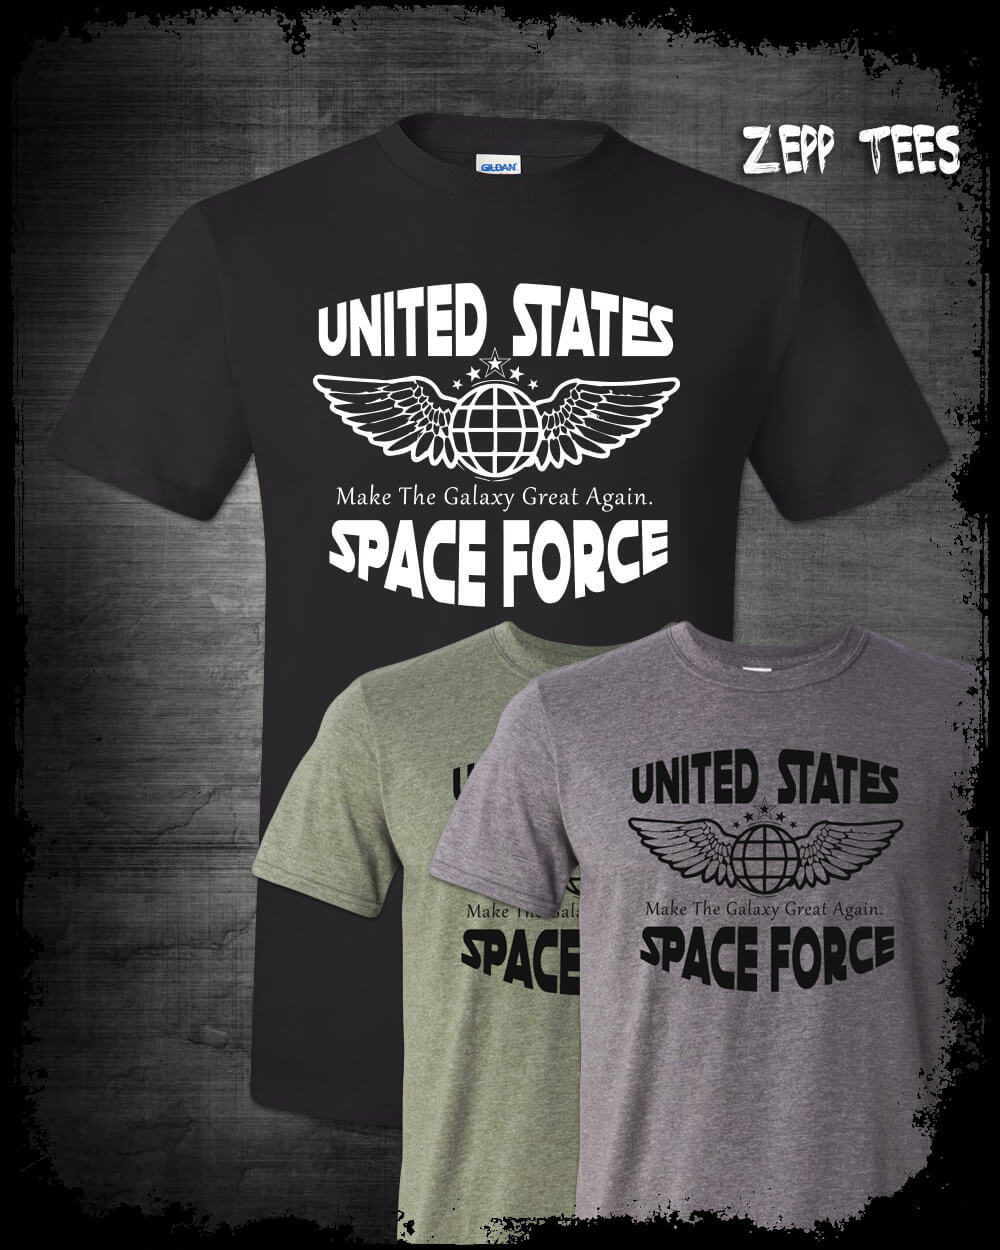 2019 Cool Trump Space Force T-Shirt Funny Make The Galaxy Great Again Meme USSF 2020 MAGA Tee image